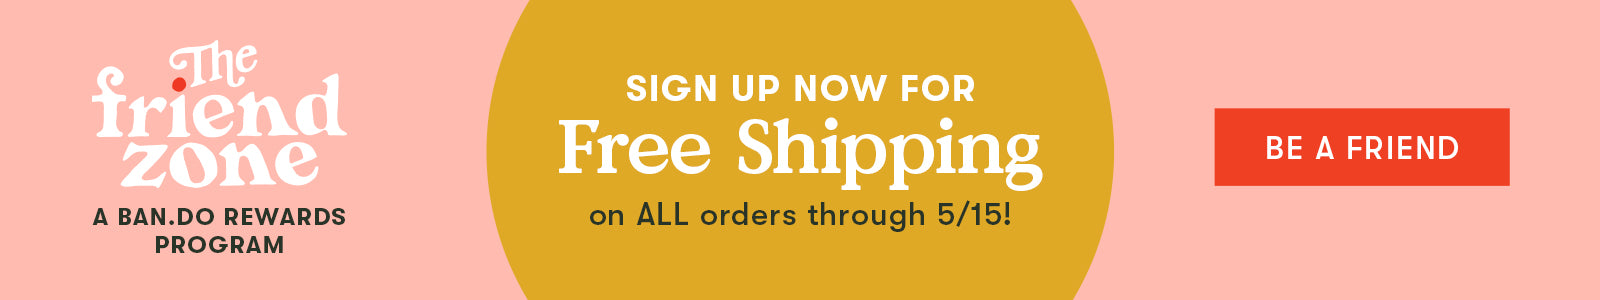 Free shipping for Friend Zone members through 5/15!